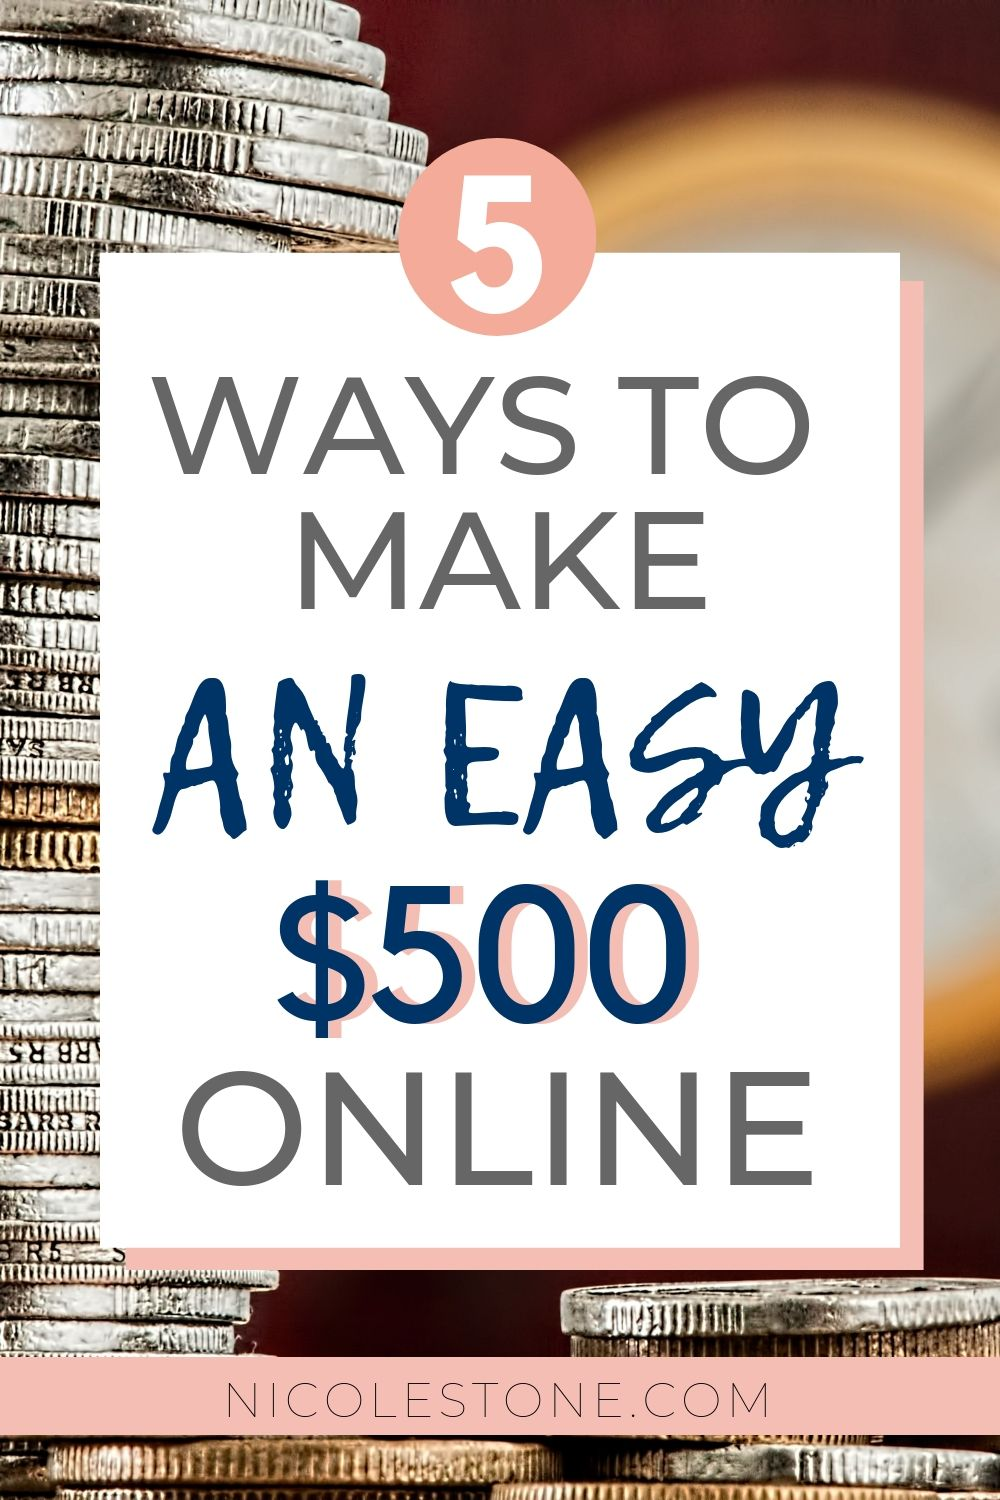 Learn 5 ways you can make an extra money online working at home. These money making tactics are easy to follow, quick, and can get you some extra cash in no time. #makemoney #earnmoney #money #workathome #income